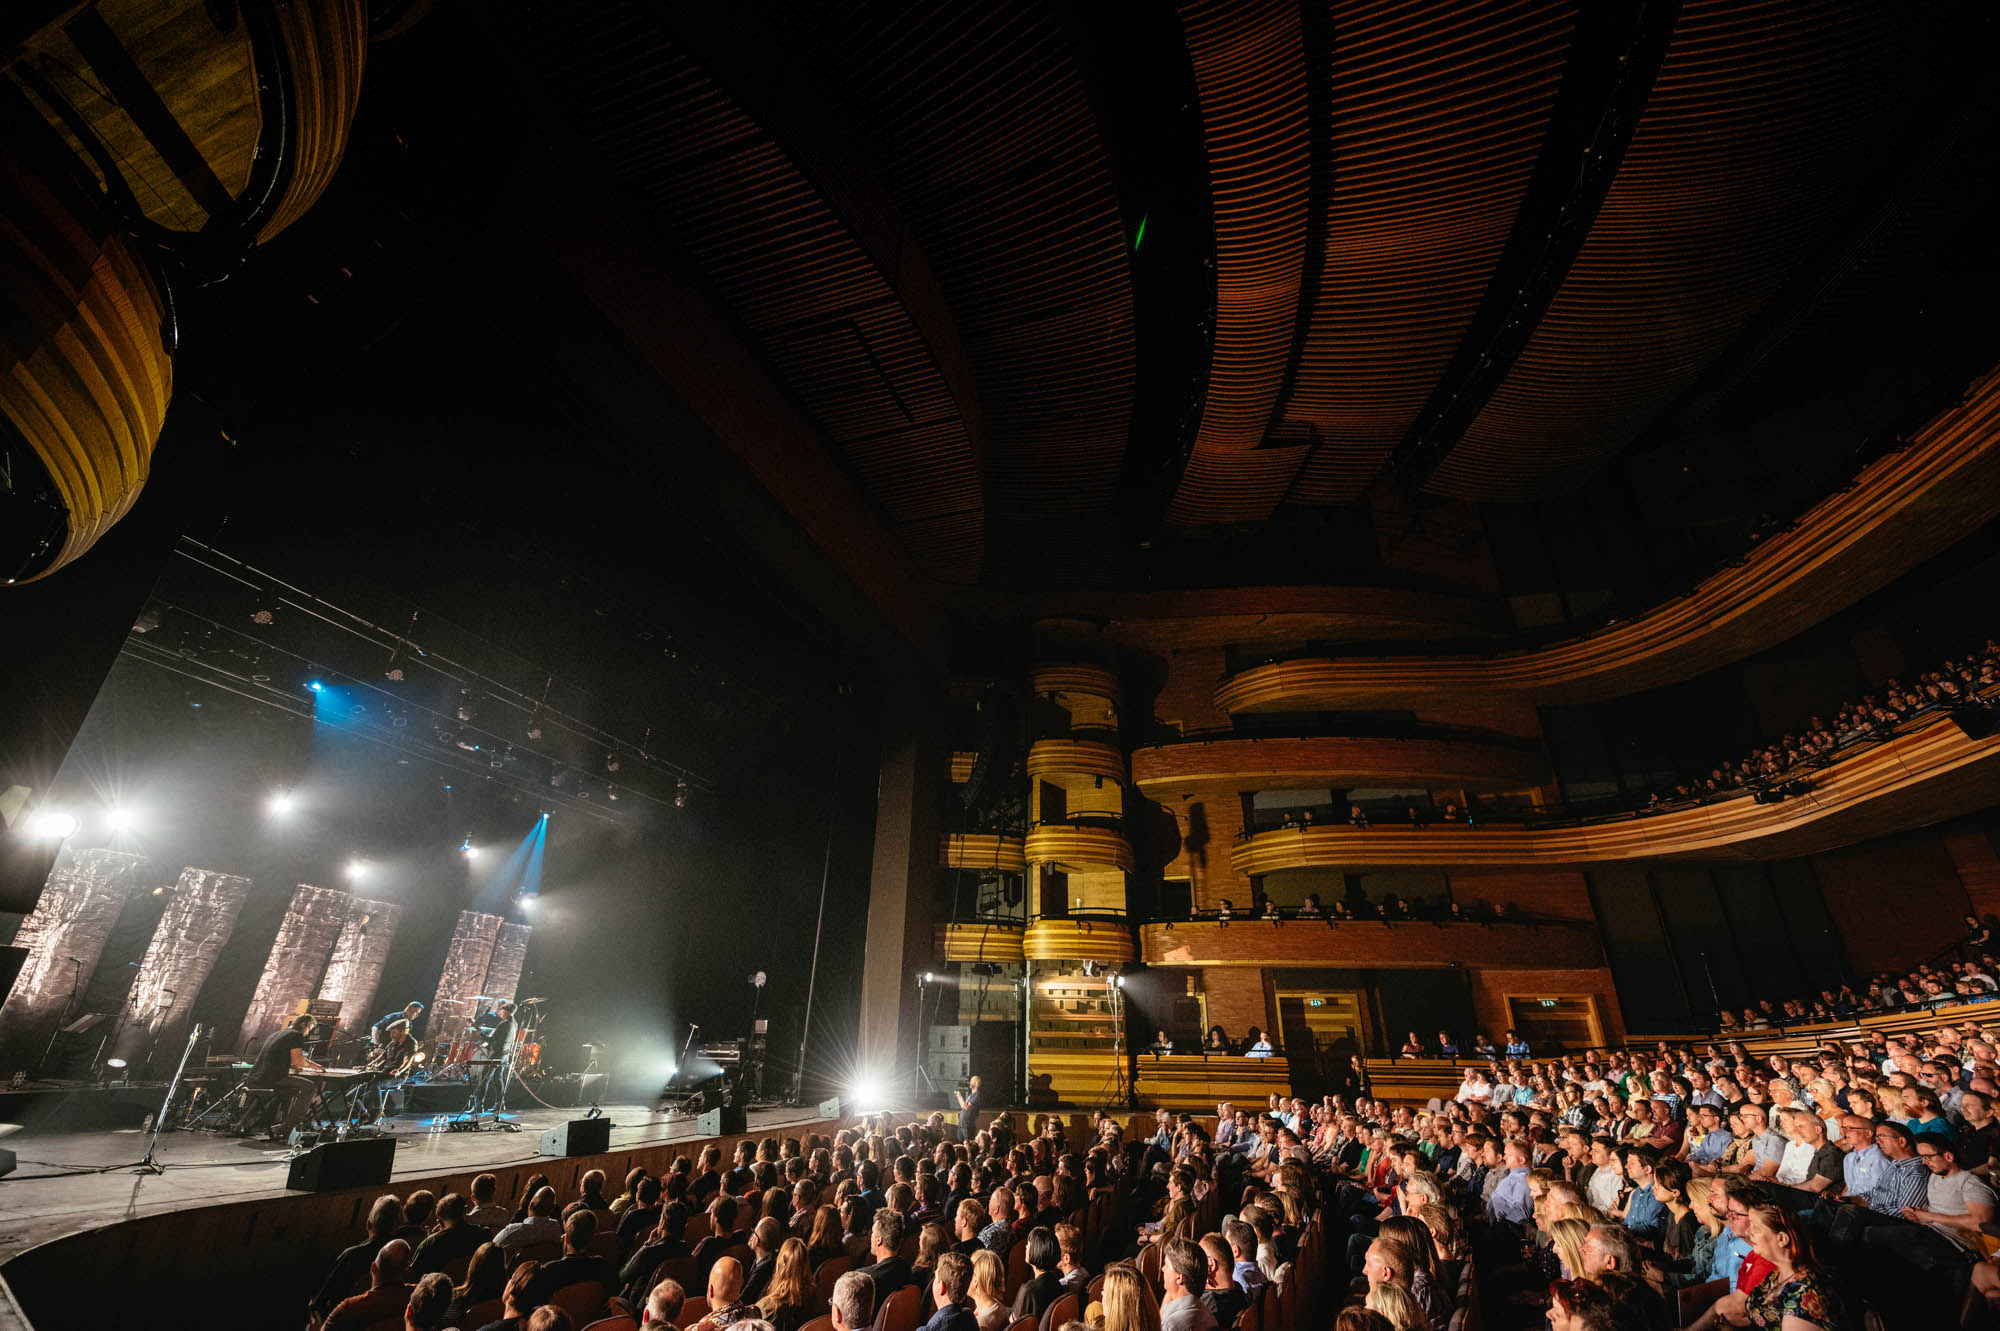 A photo of the inside of the Wales Millennium Centre Auditorium with a full house audience and stage Lighting